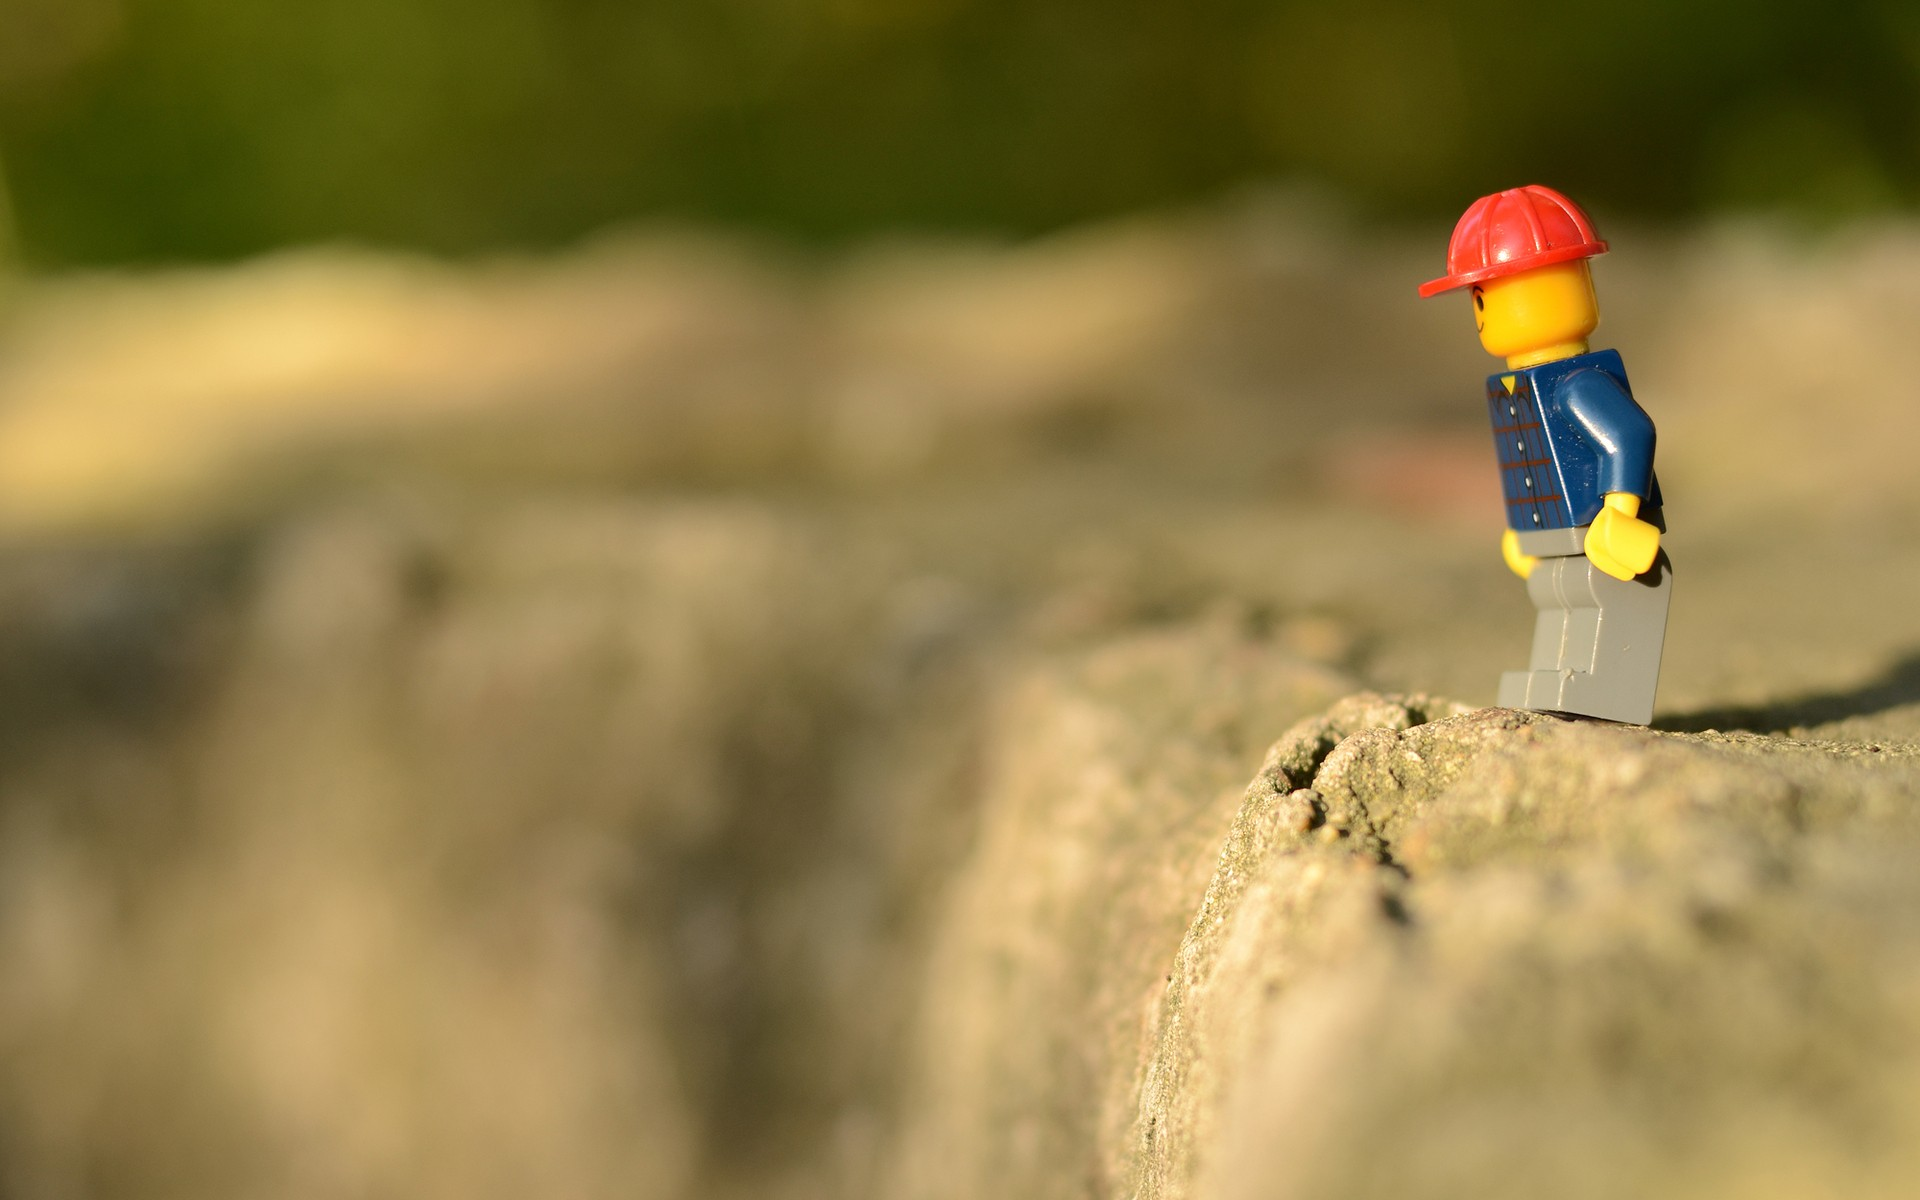 Cool Lego Wallpapers HD 1920x1200